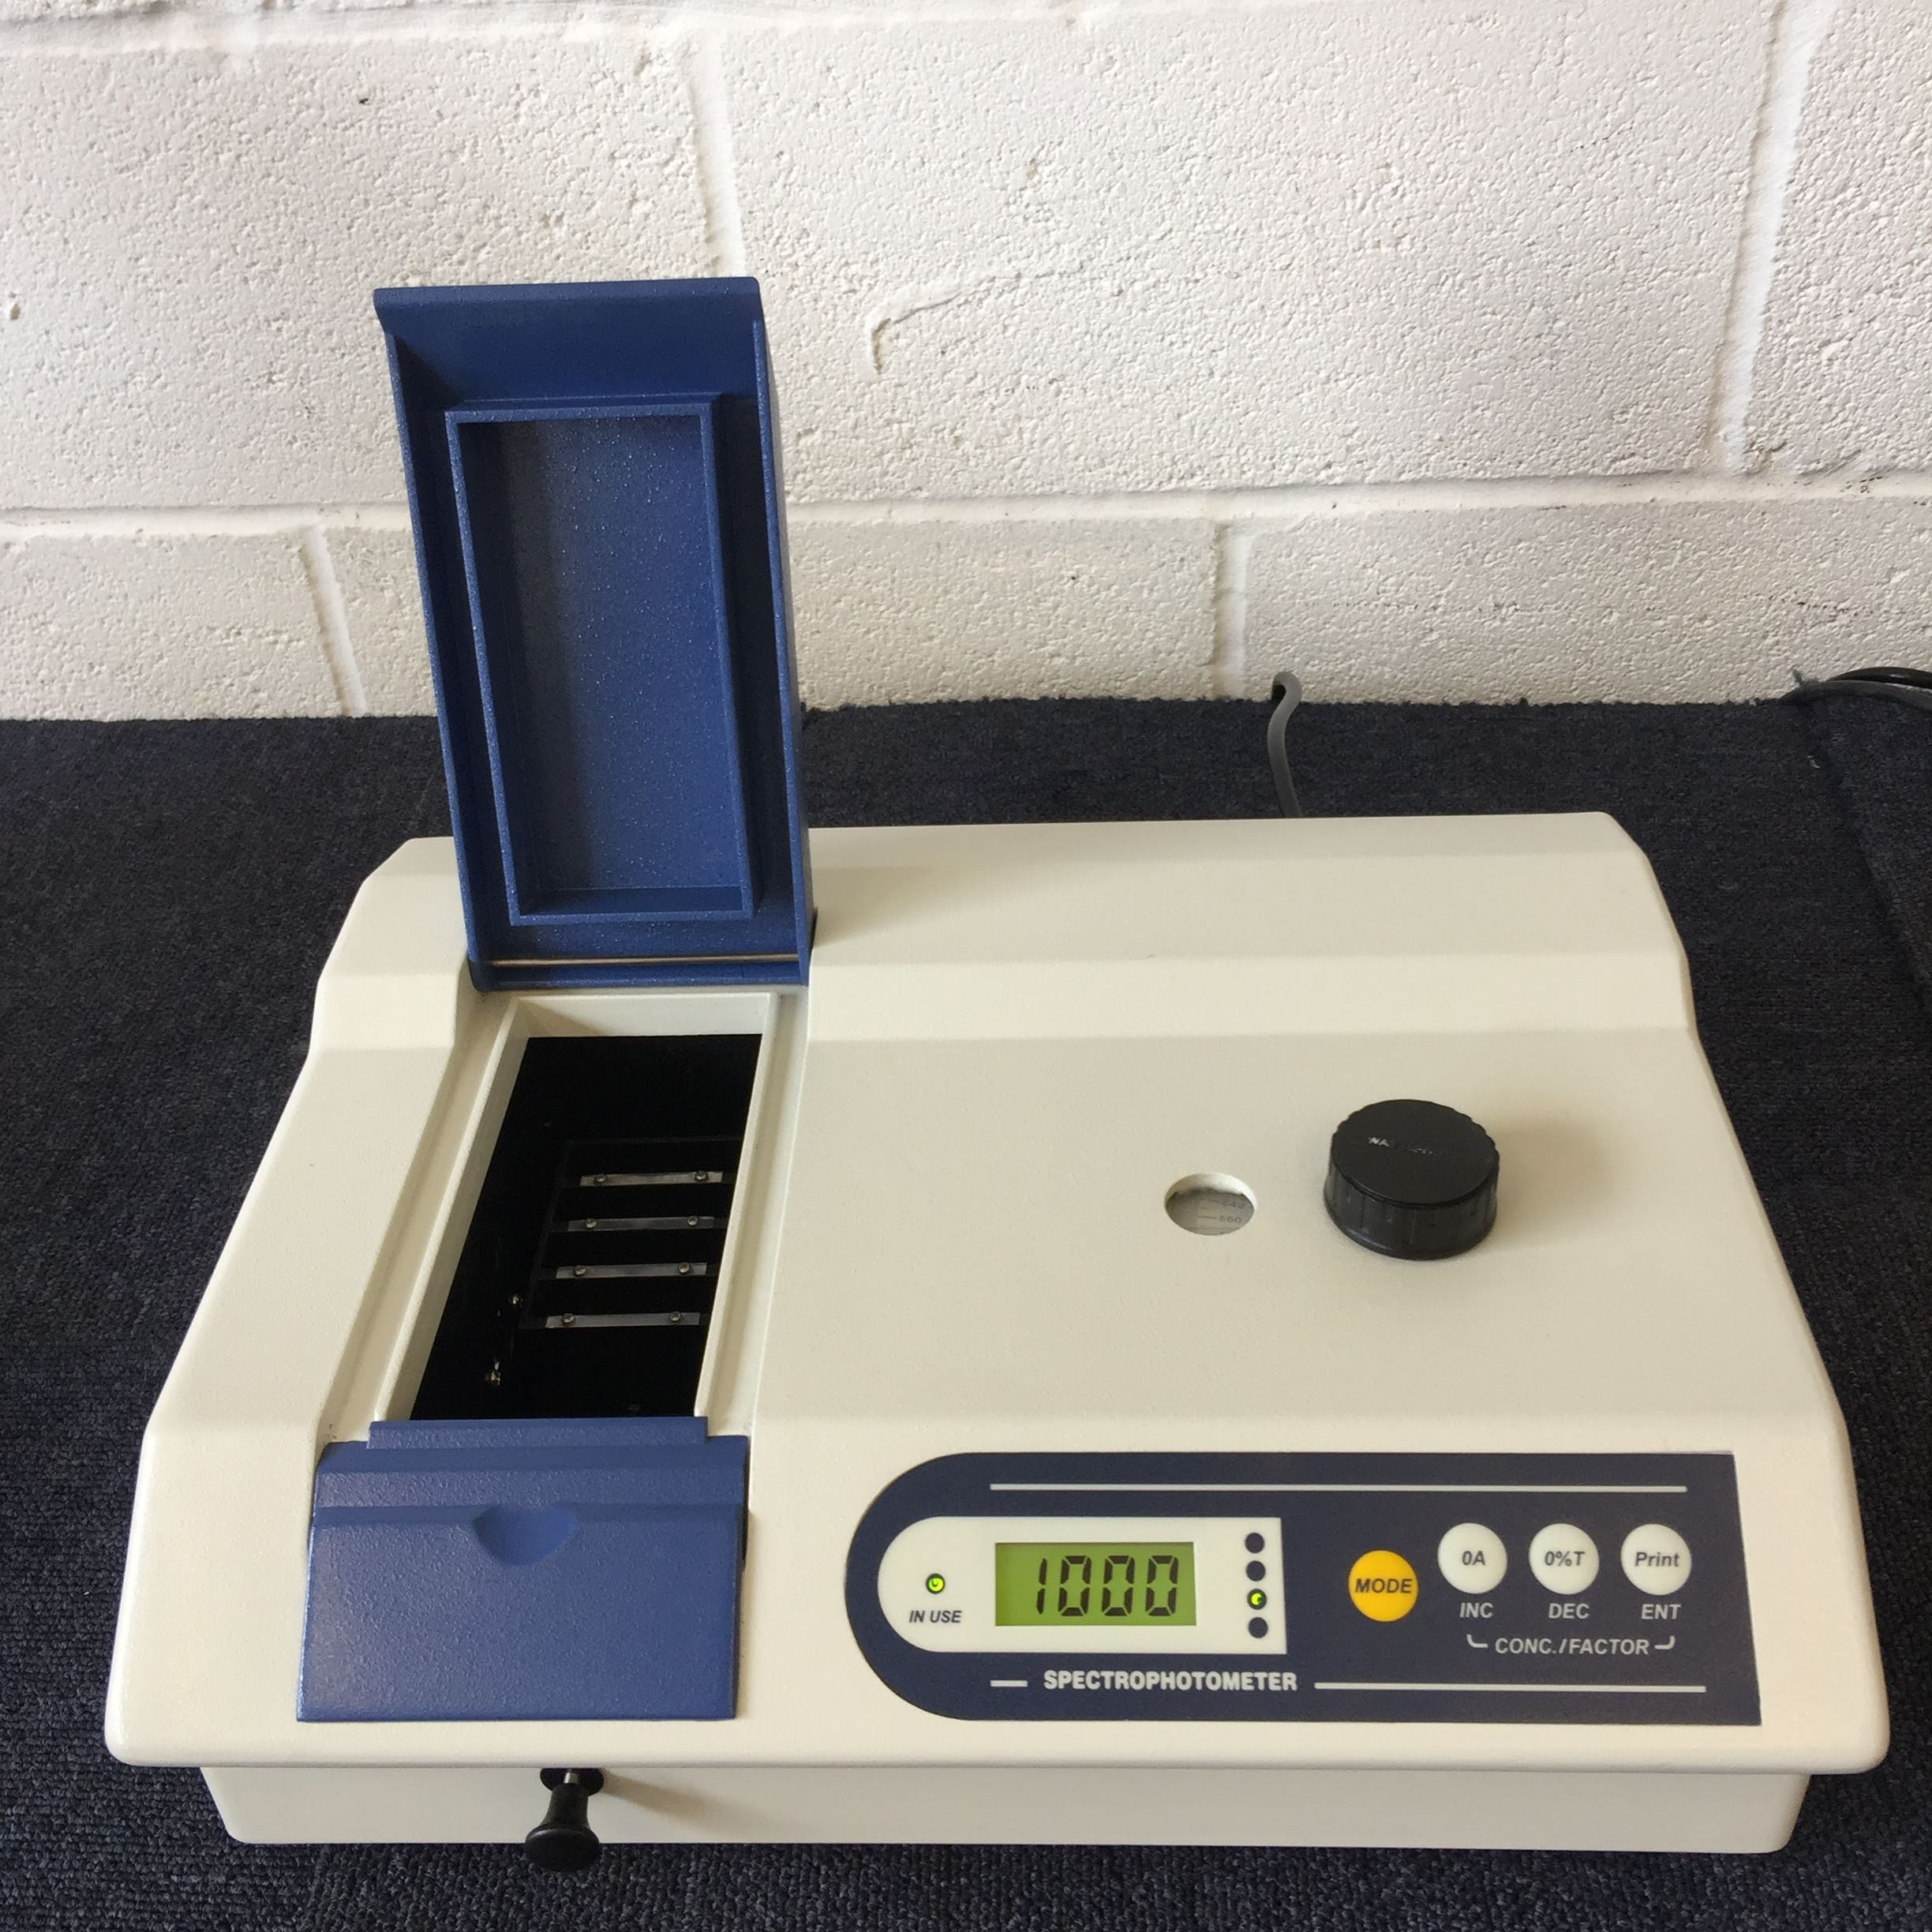 Medline Scientific CETI Spectrophotometer Lid Open